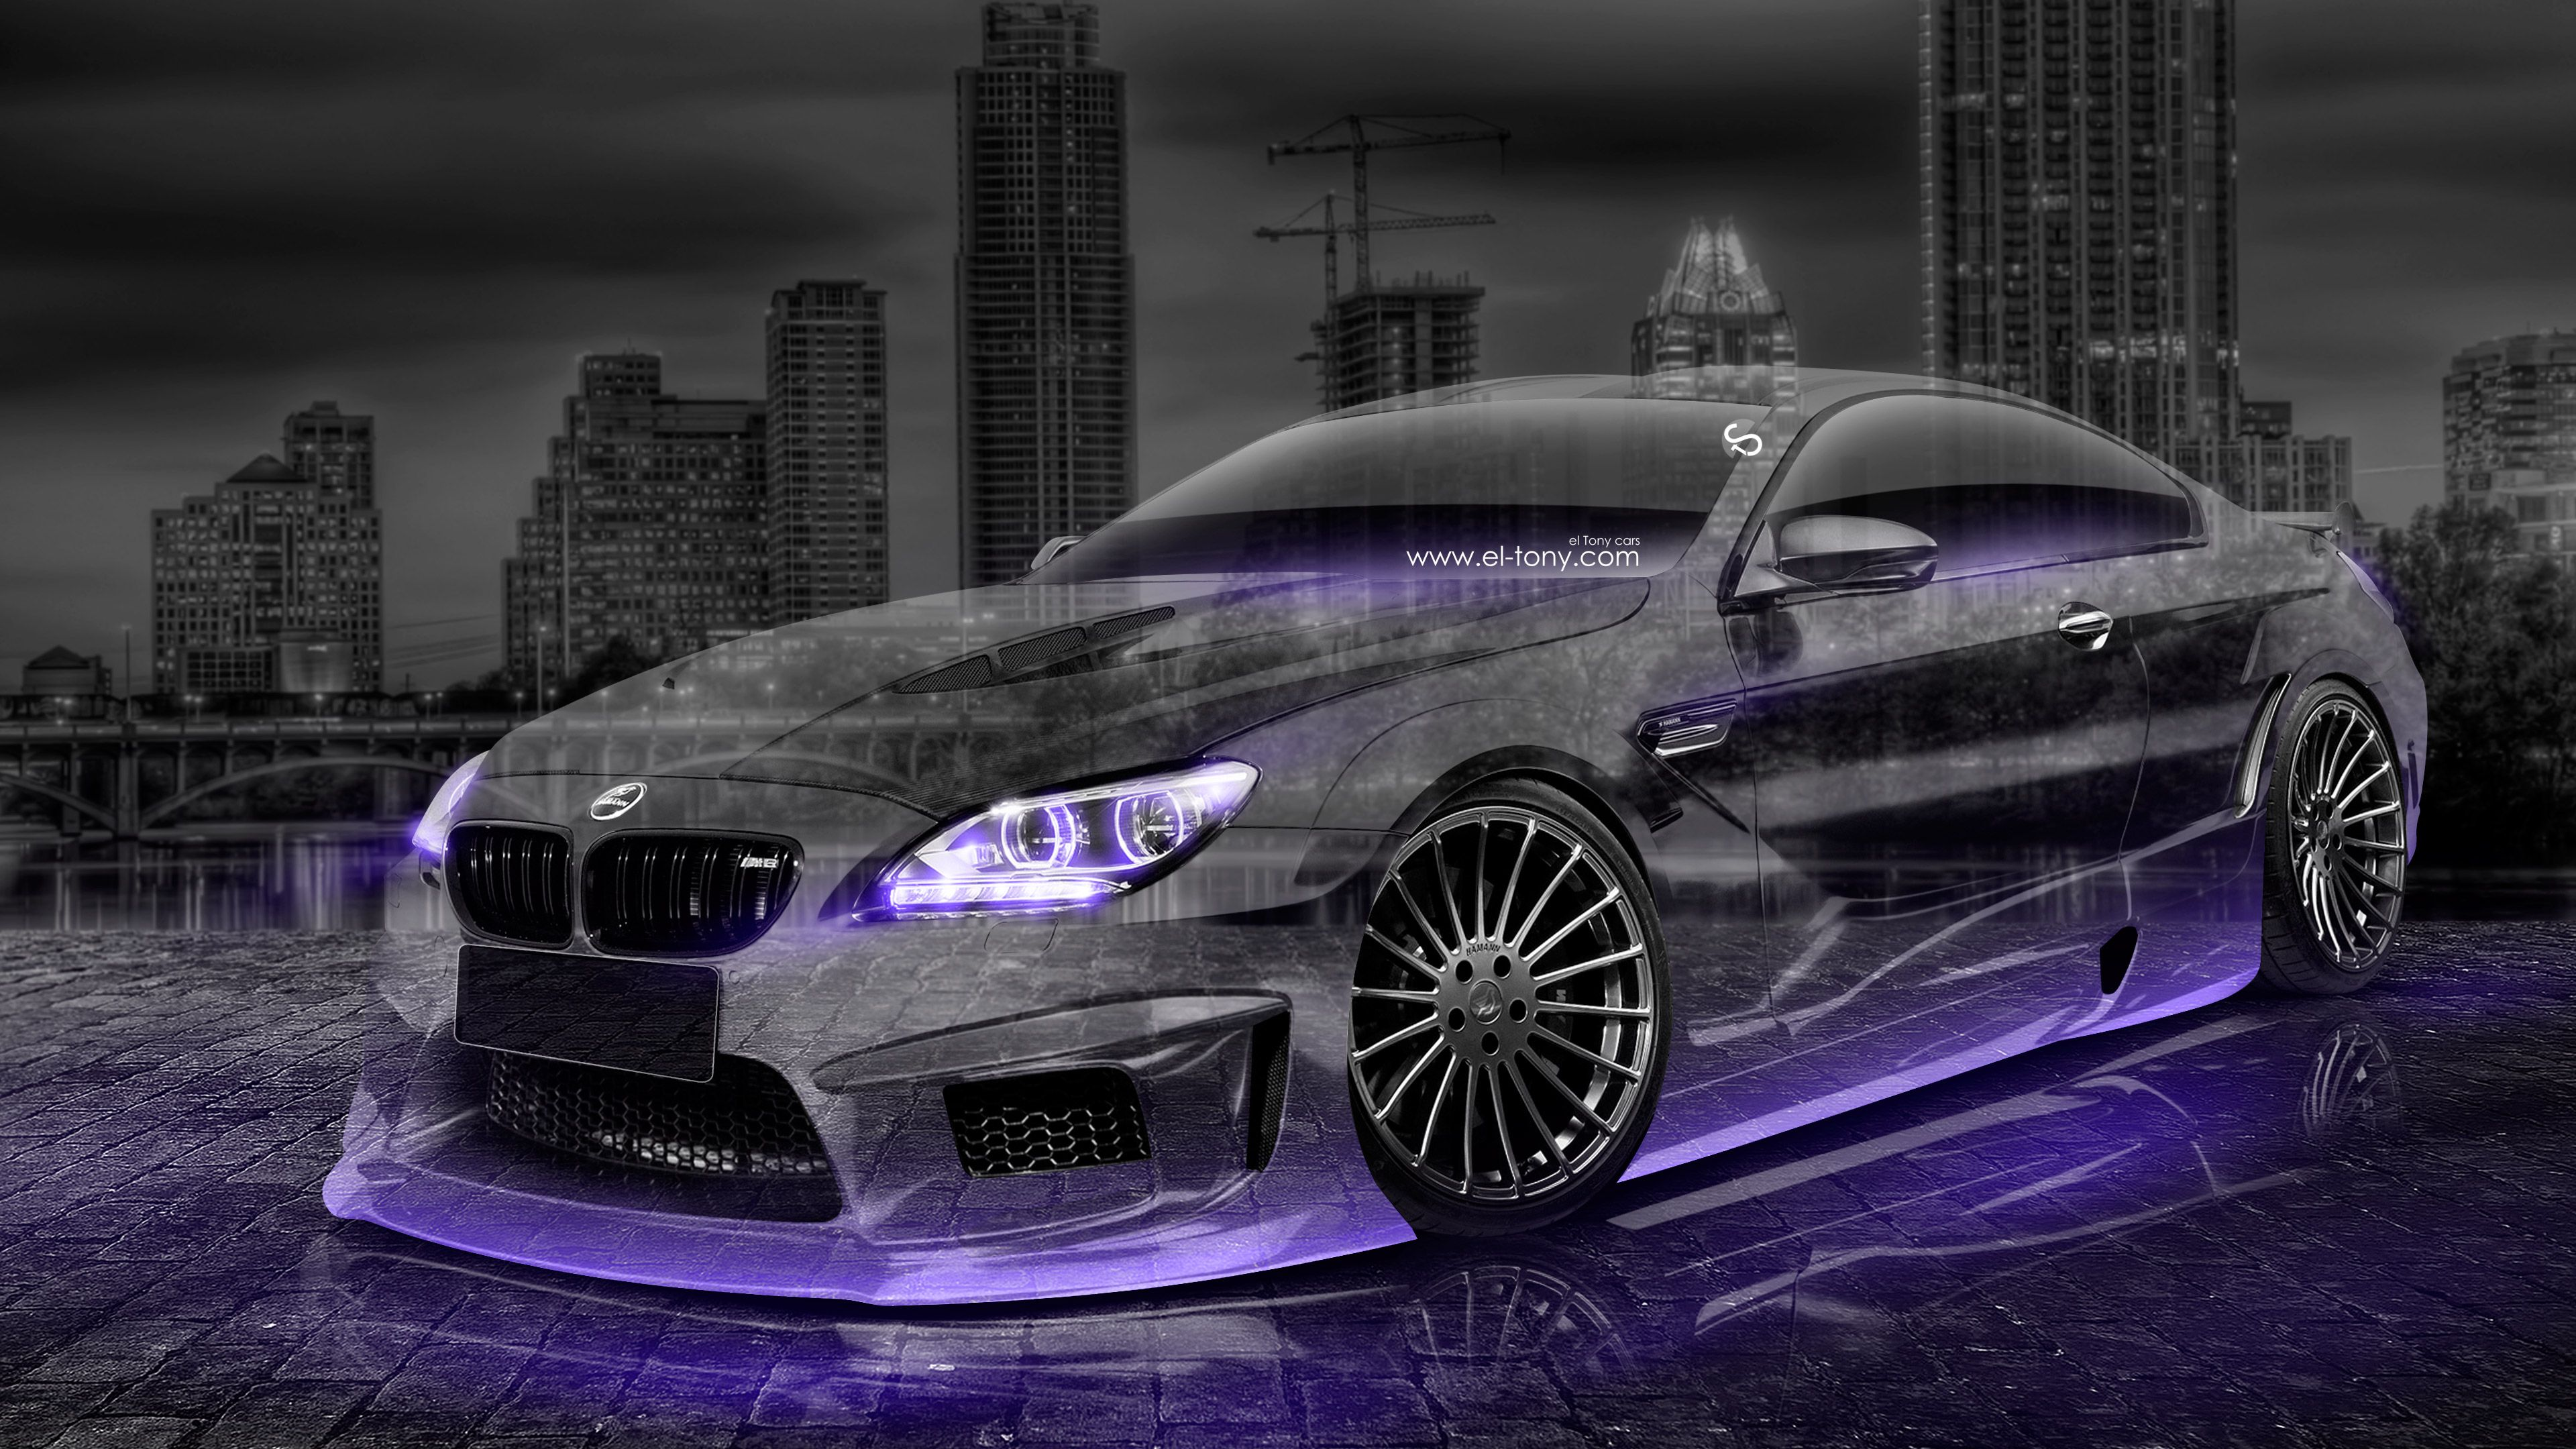 Superieur BMW M6 Hamann Tuning 3D Anime Girl Music Aerography Car 2015 Art Pink Neon Effects HD Wallpapers Design By Tony Kokhan Www.el Tony.com Image  | Pinterest ...